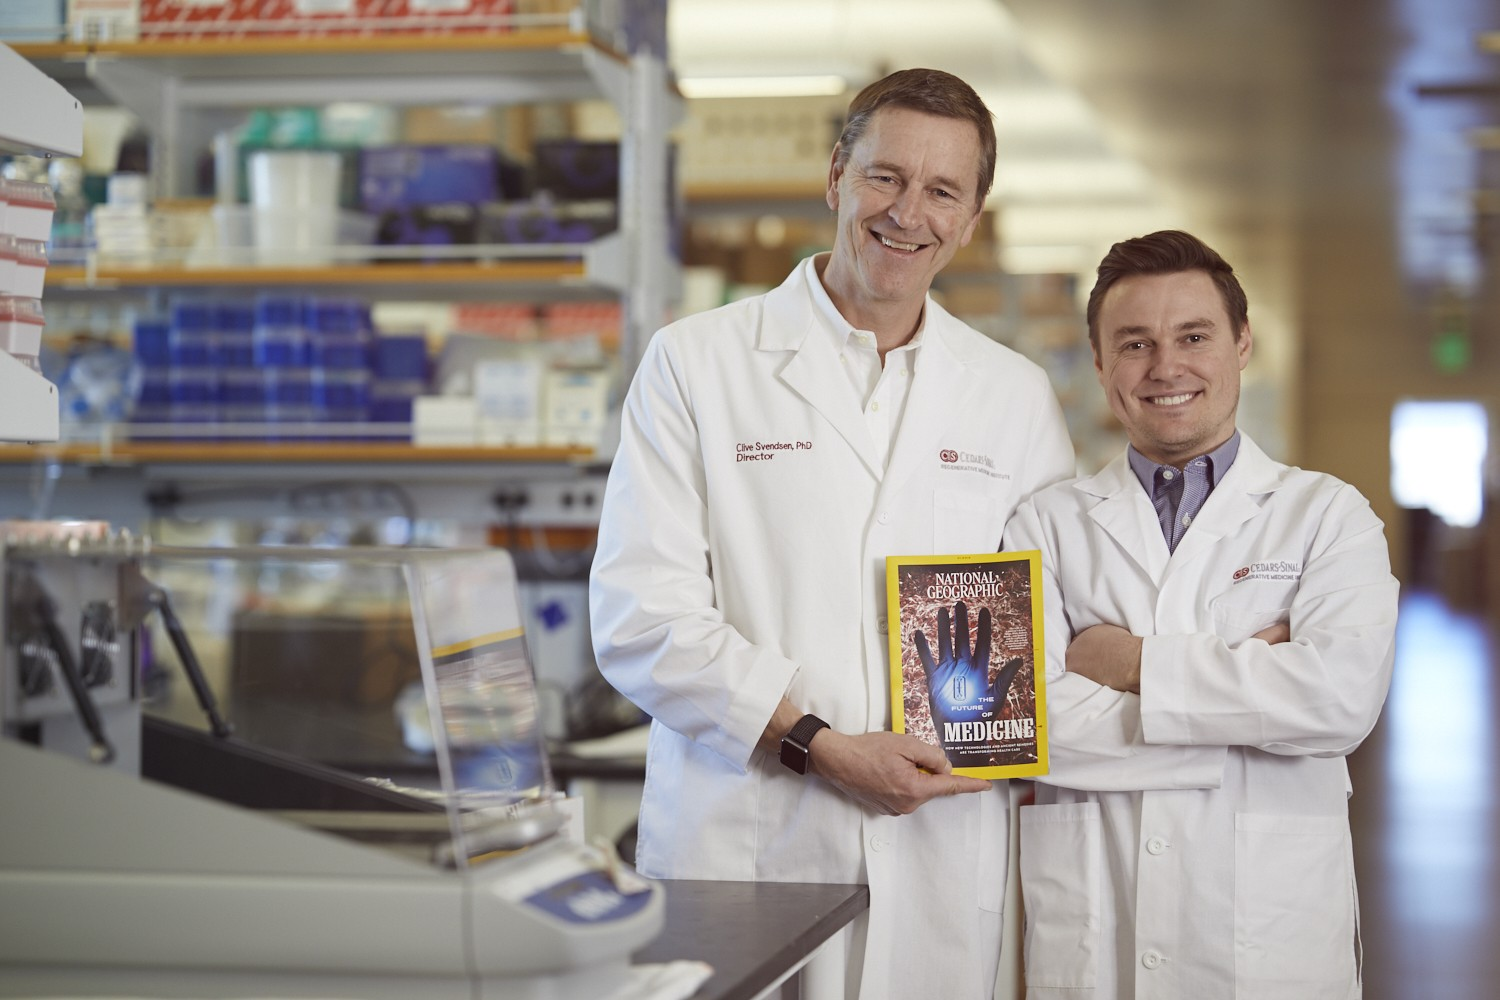 Clive Svendsen, PhD, left, director of the Cedars-Sinai Board of Governors Regenerative Medicine Institute, and Samuel Sances, PhD, a postdoctoral fellow at the institute, with the January 2019 special edition of National Geographic. The magazine cover features a striking image of spinal cord tissue that was shot by Sances in his lab. Photo by Cedars-Sinai.